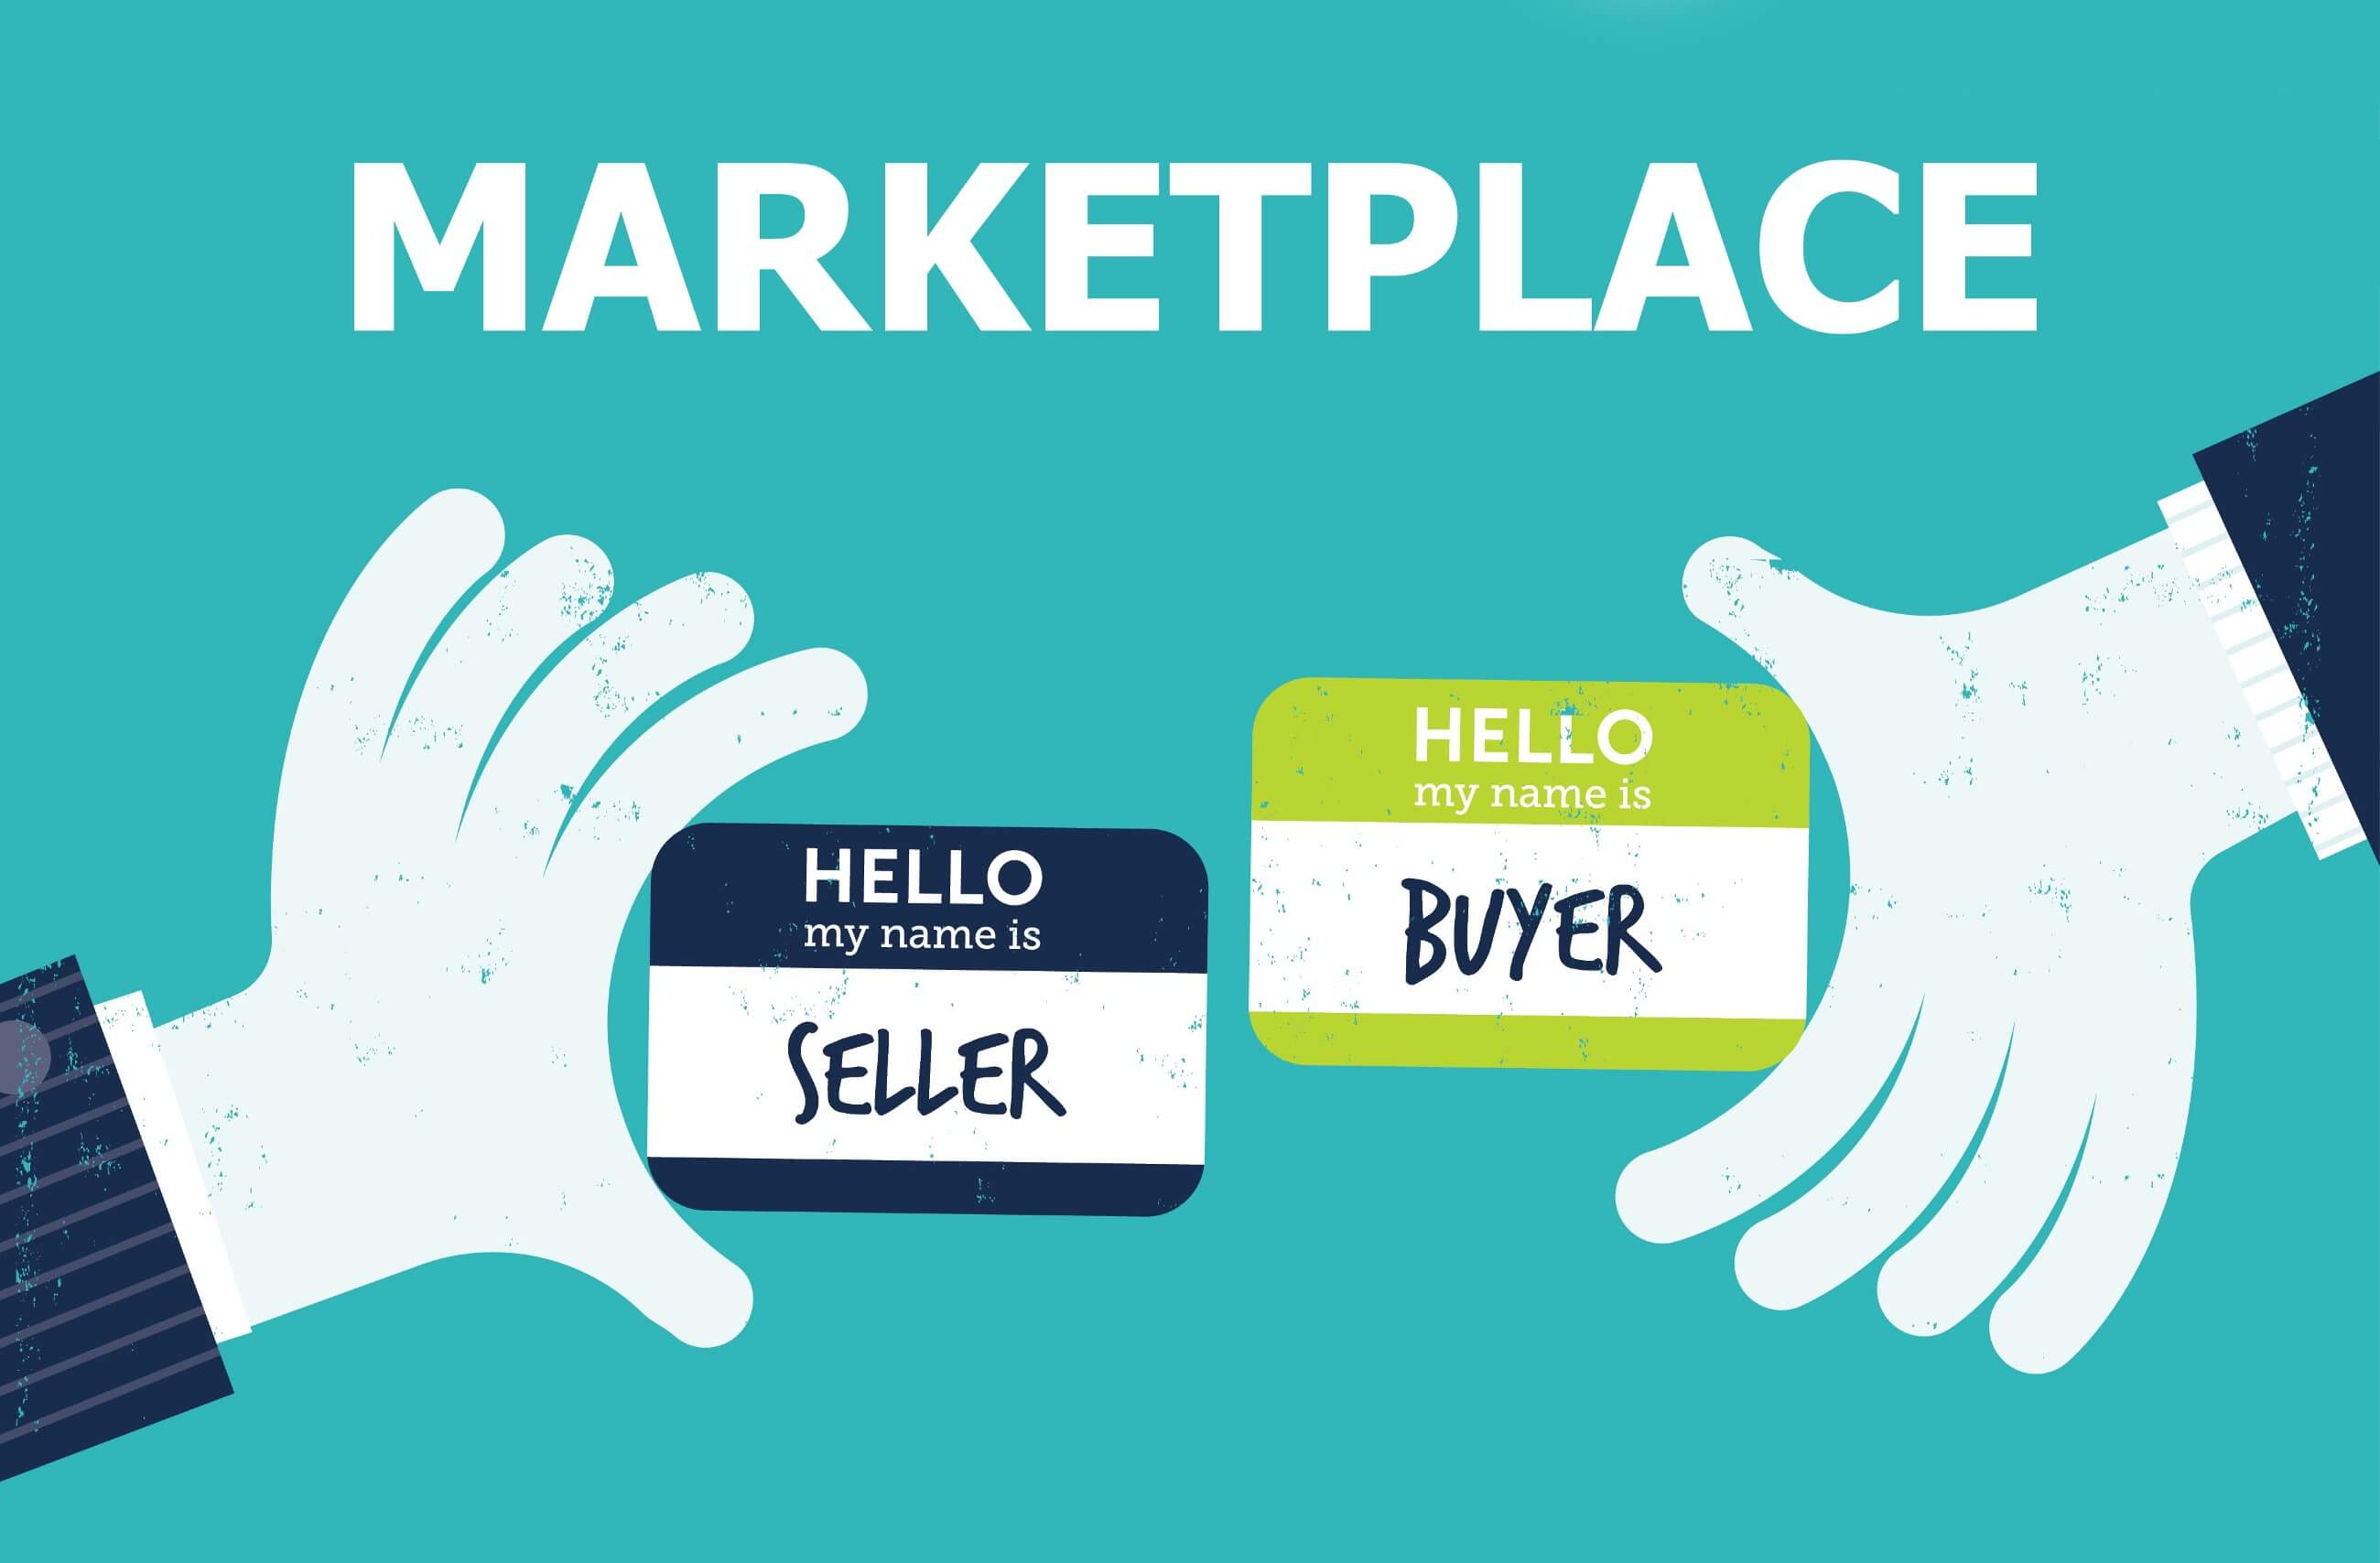 Benefits for Sellers and Buyers